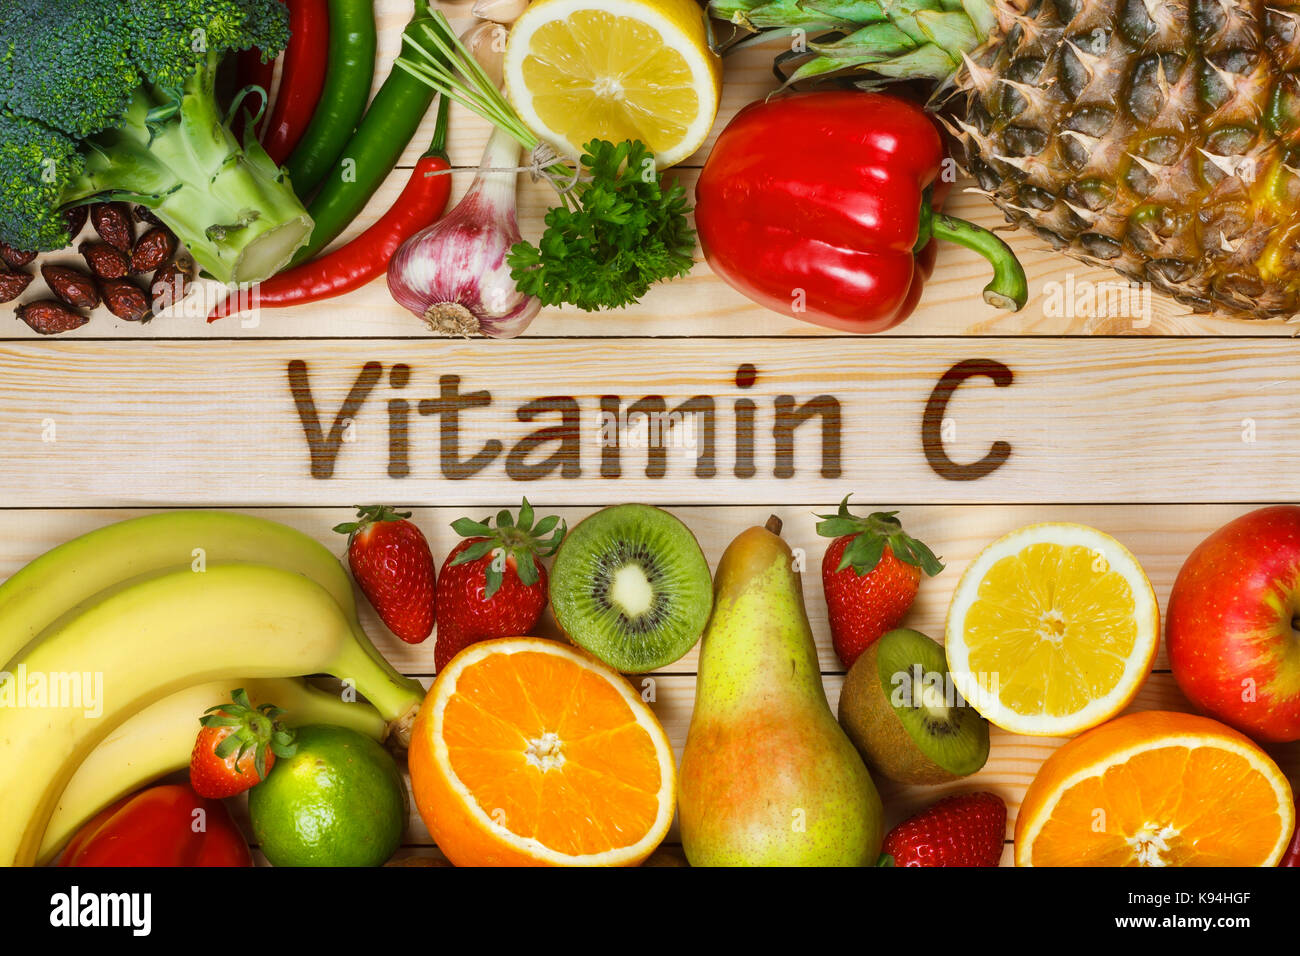 vitamin c stockfotos vitamin c bilder alamy. Black Bedroom Furniture Sets. Home Design Ideas